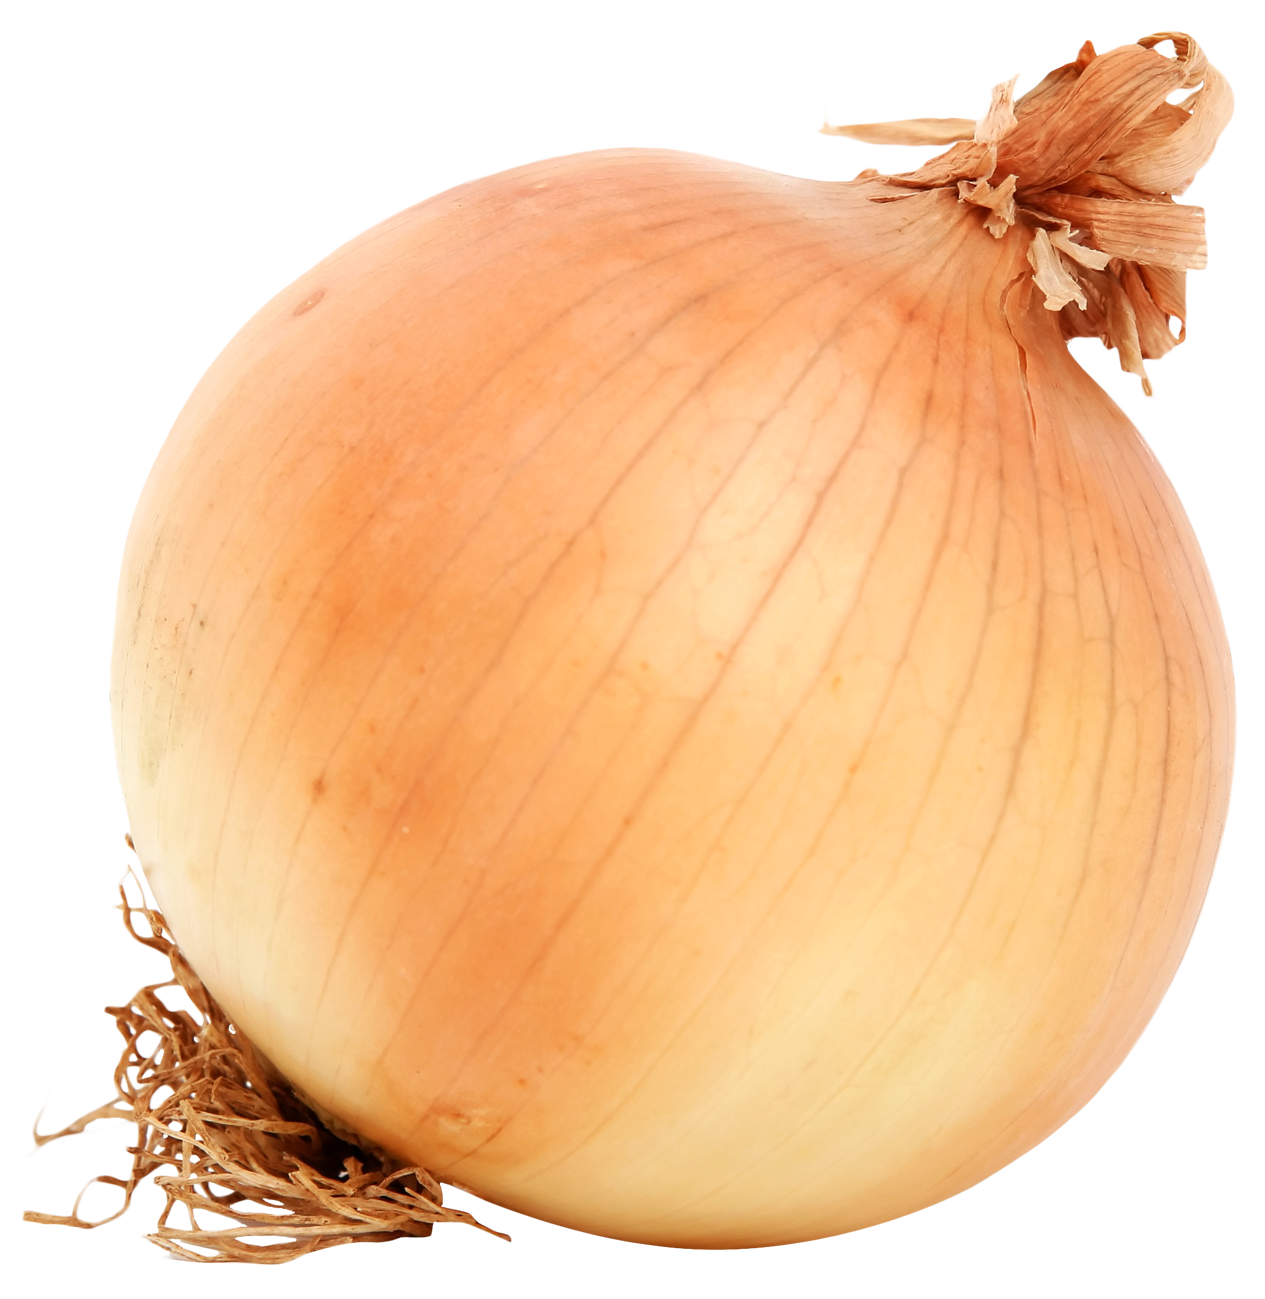 Onion PNG - 18480